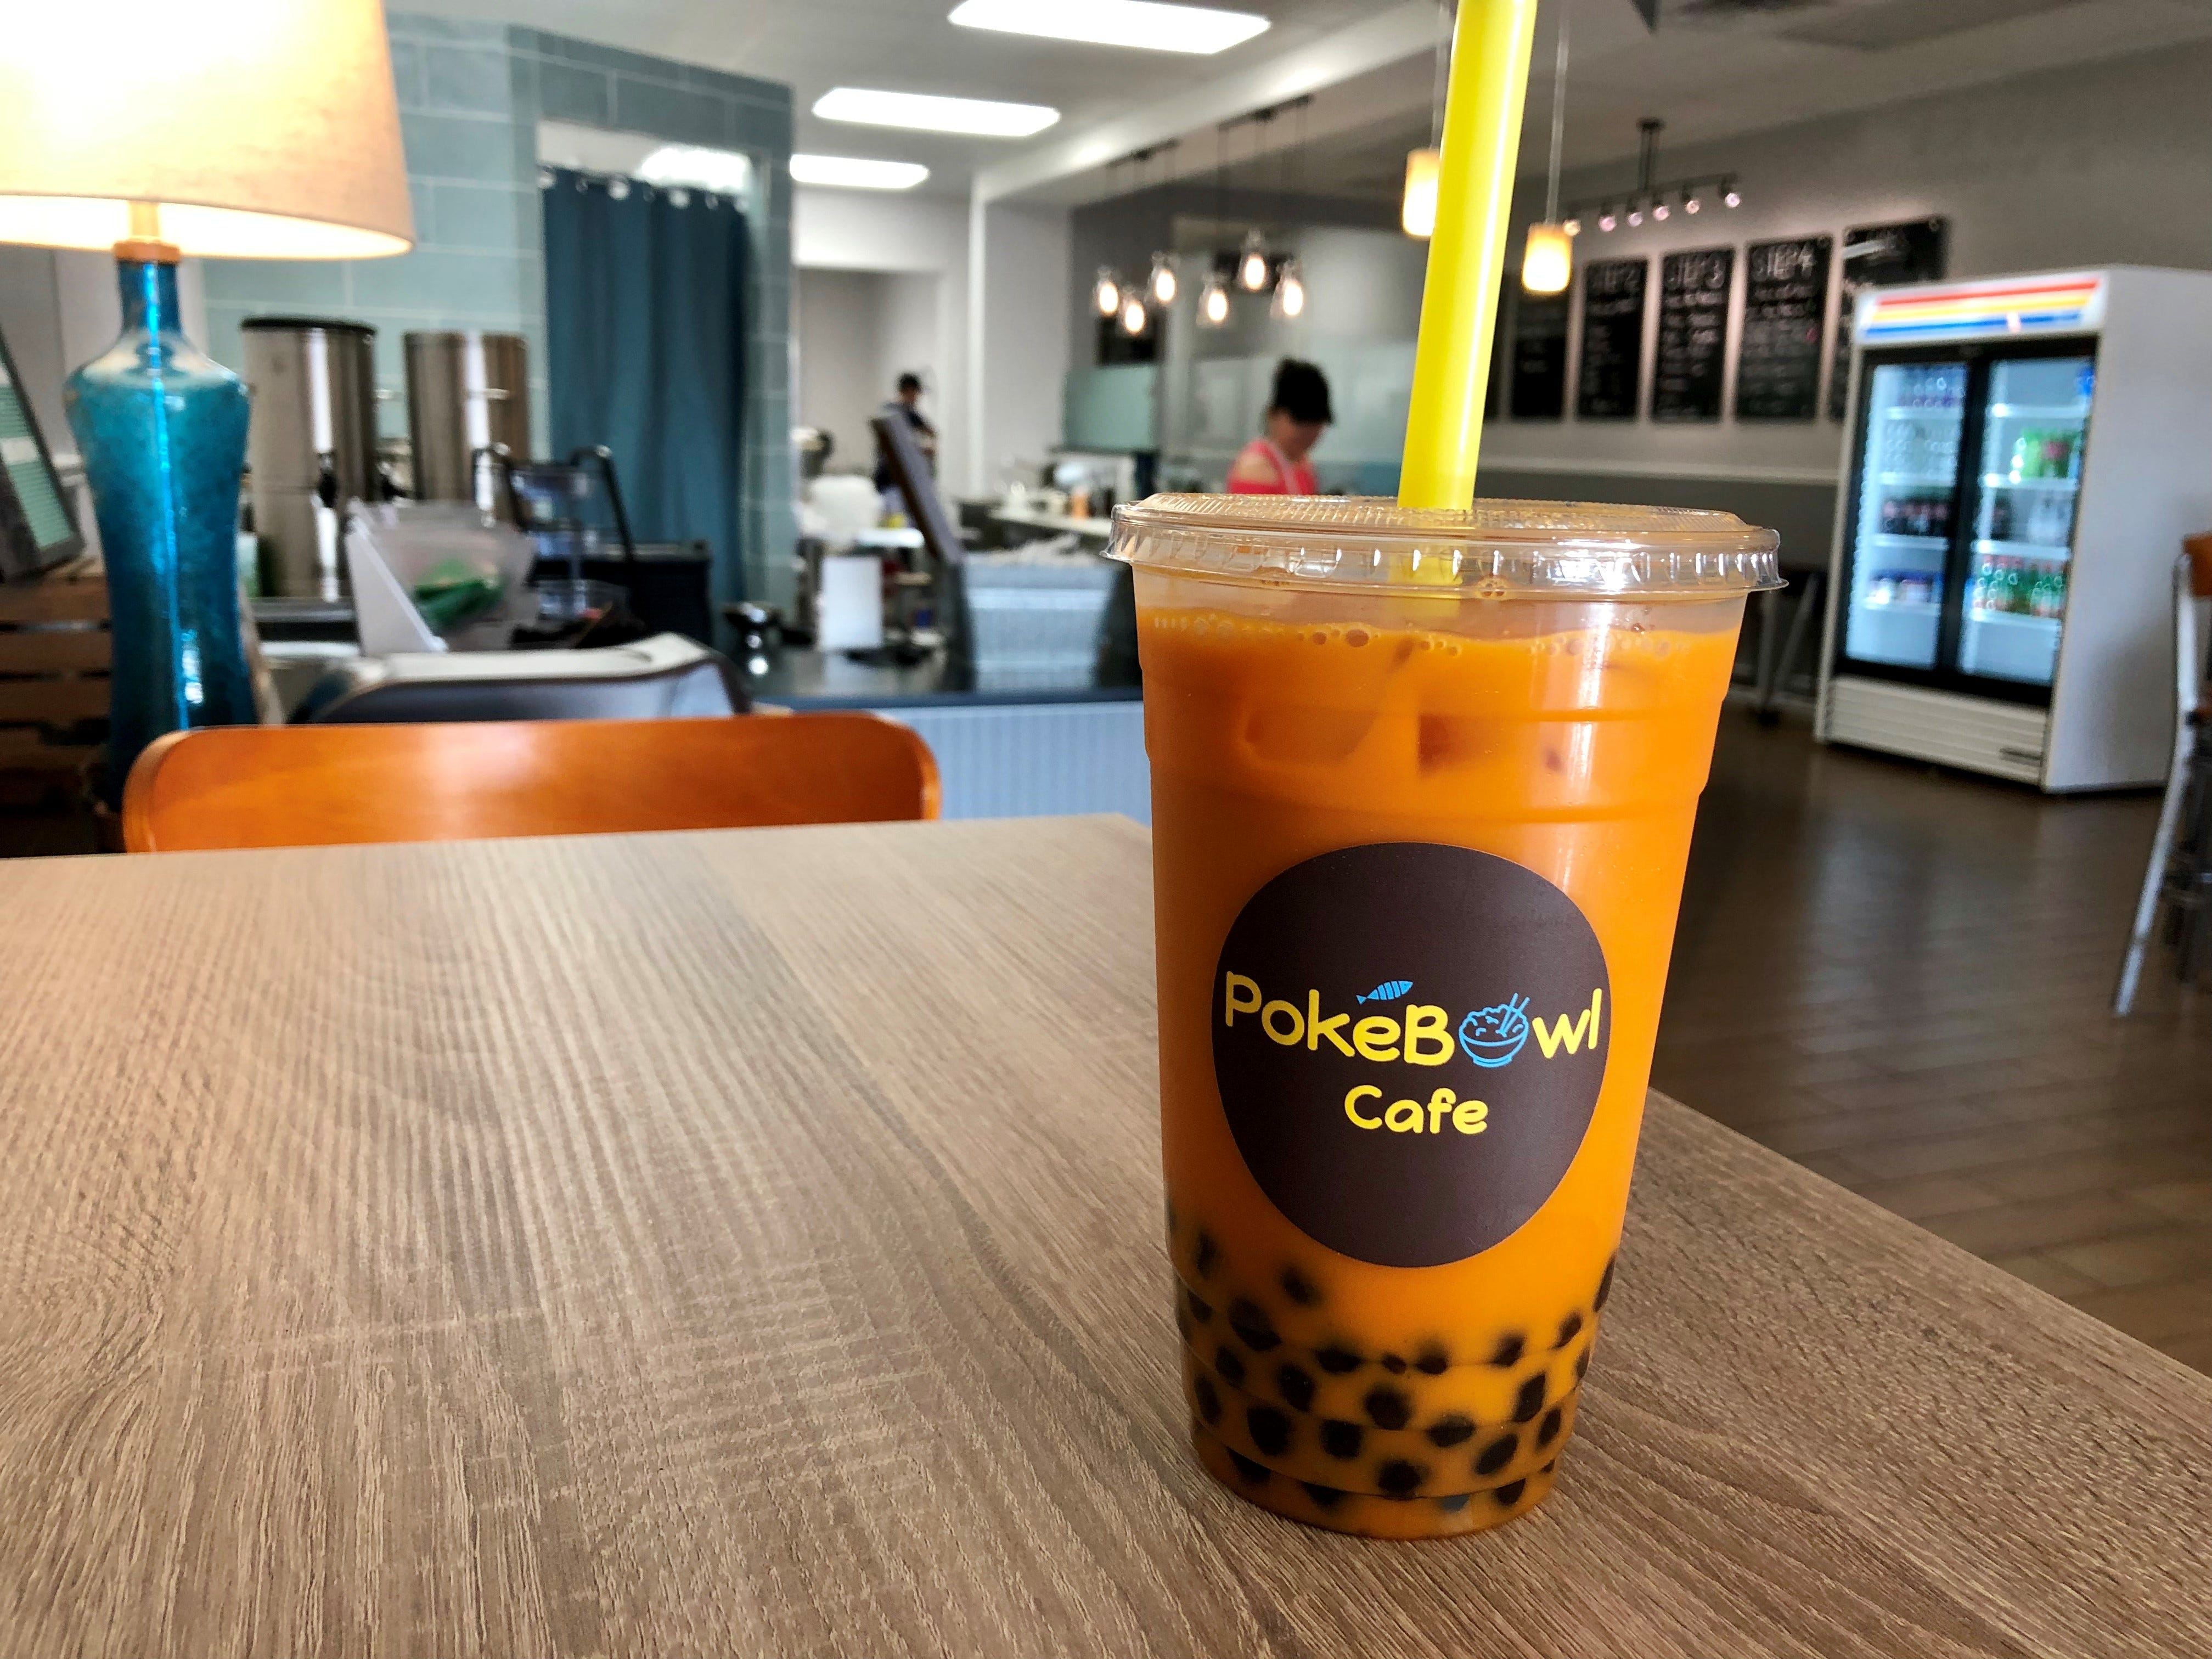 PokeBowl Cafe also offers house-steeped boba teas.